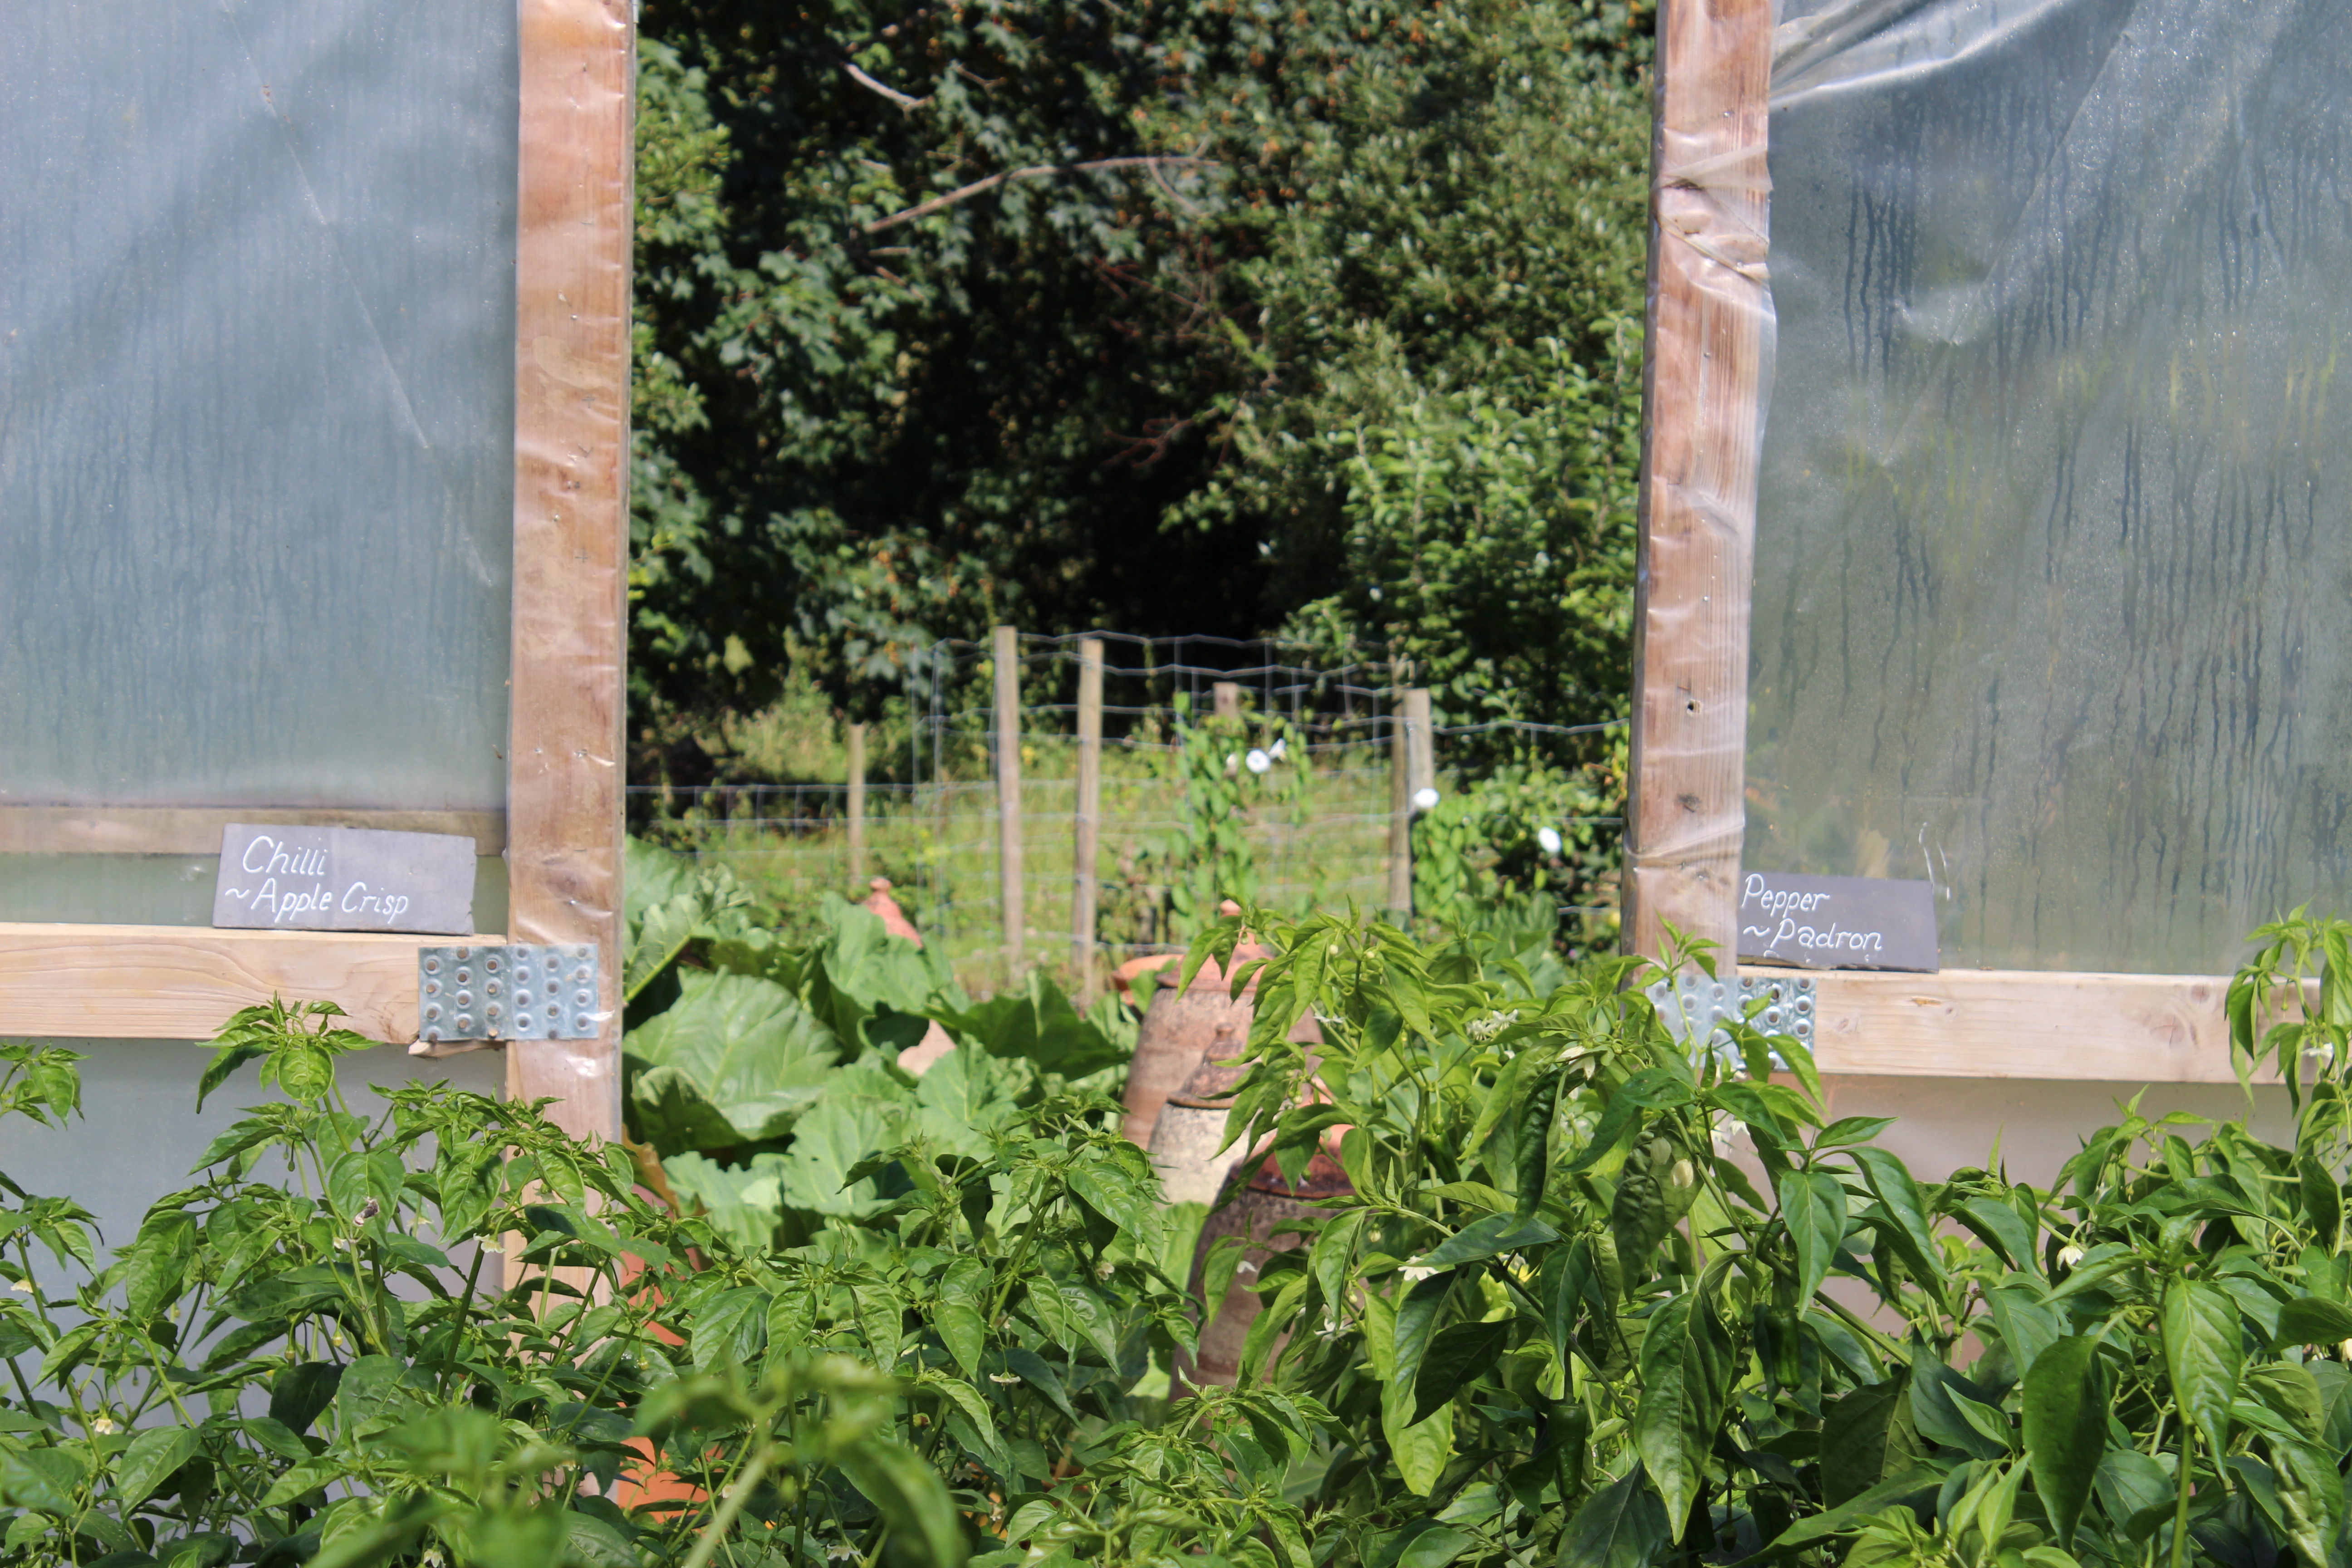 Allotment with peppers